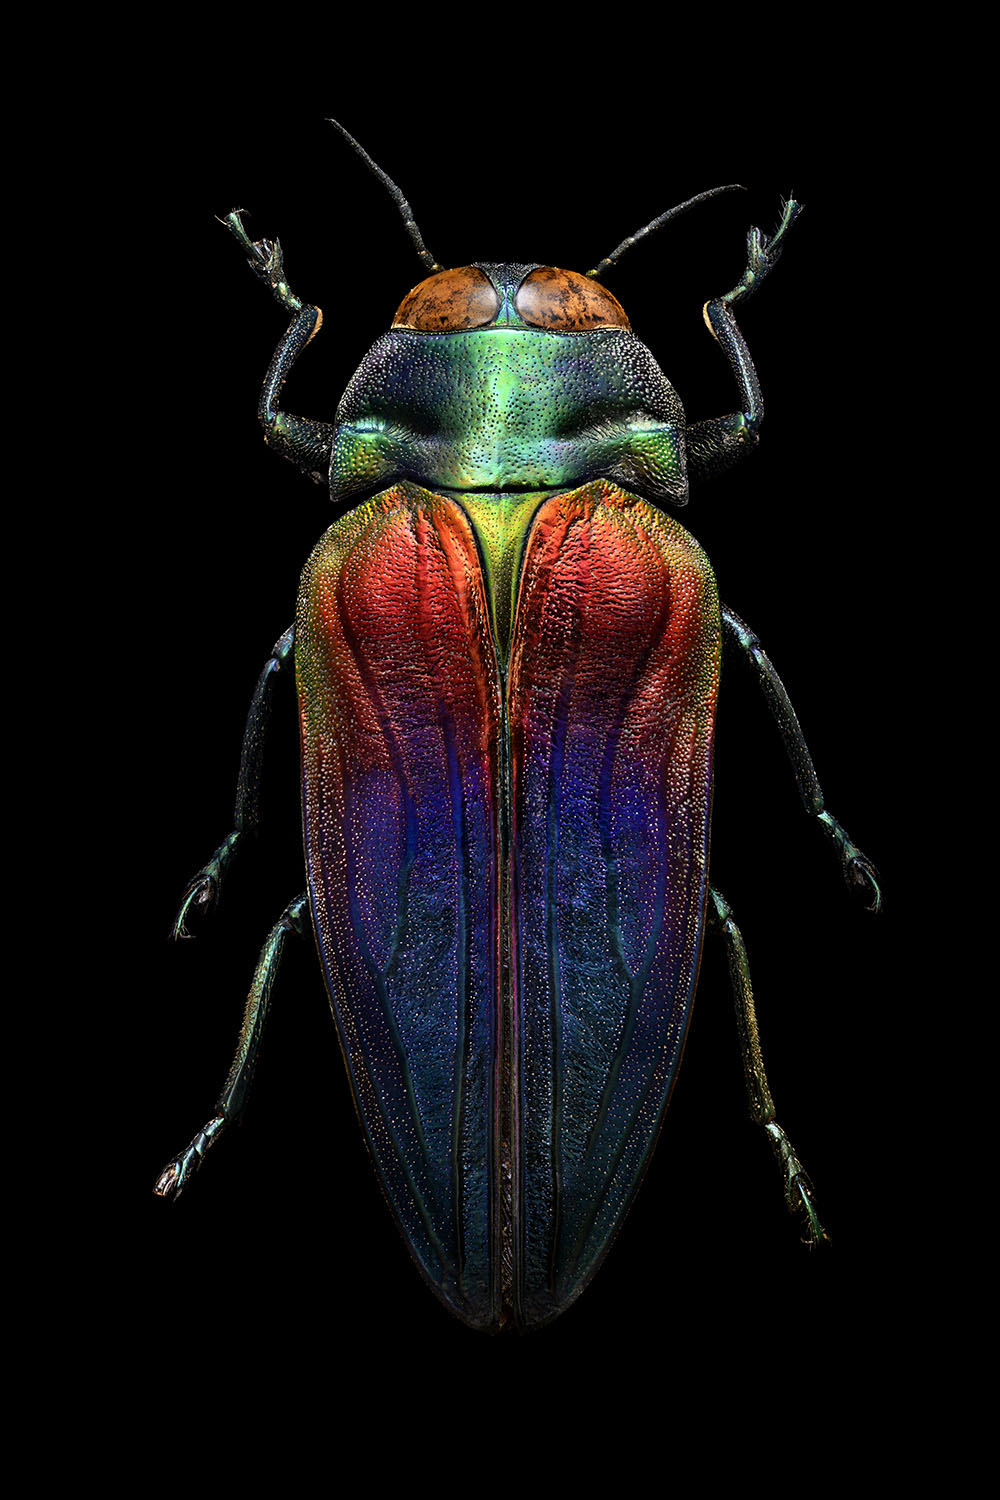 Tricoloured Jewel Beetle